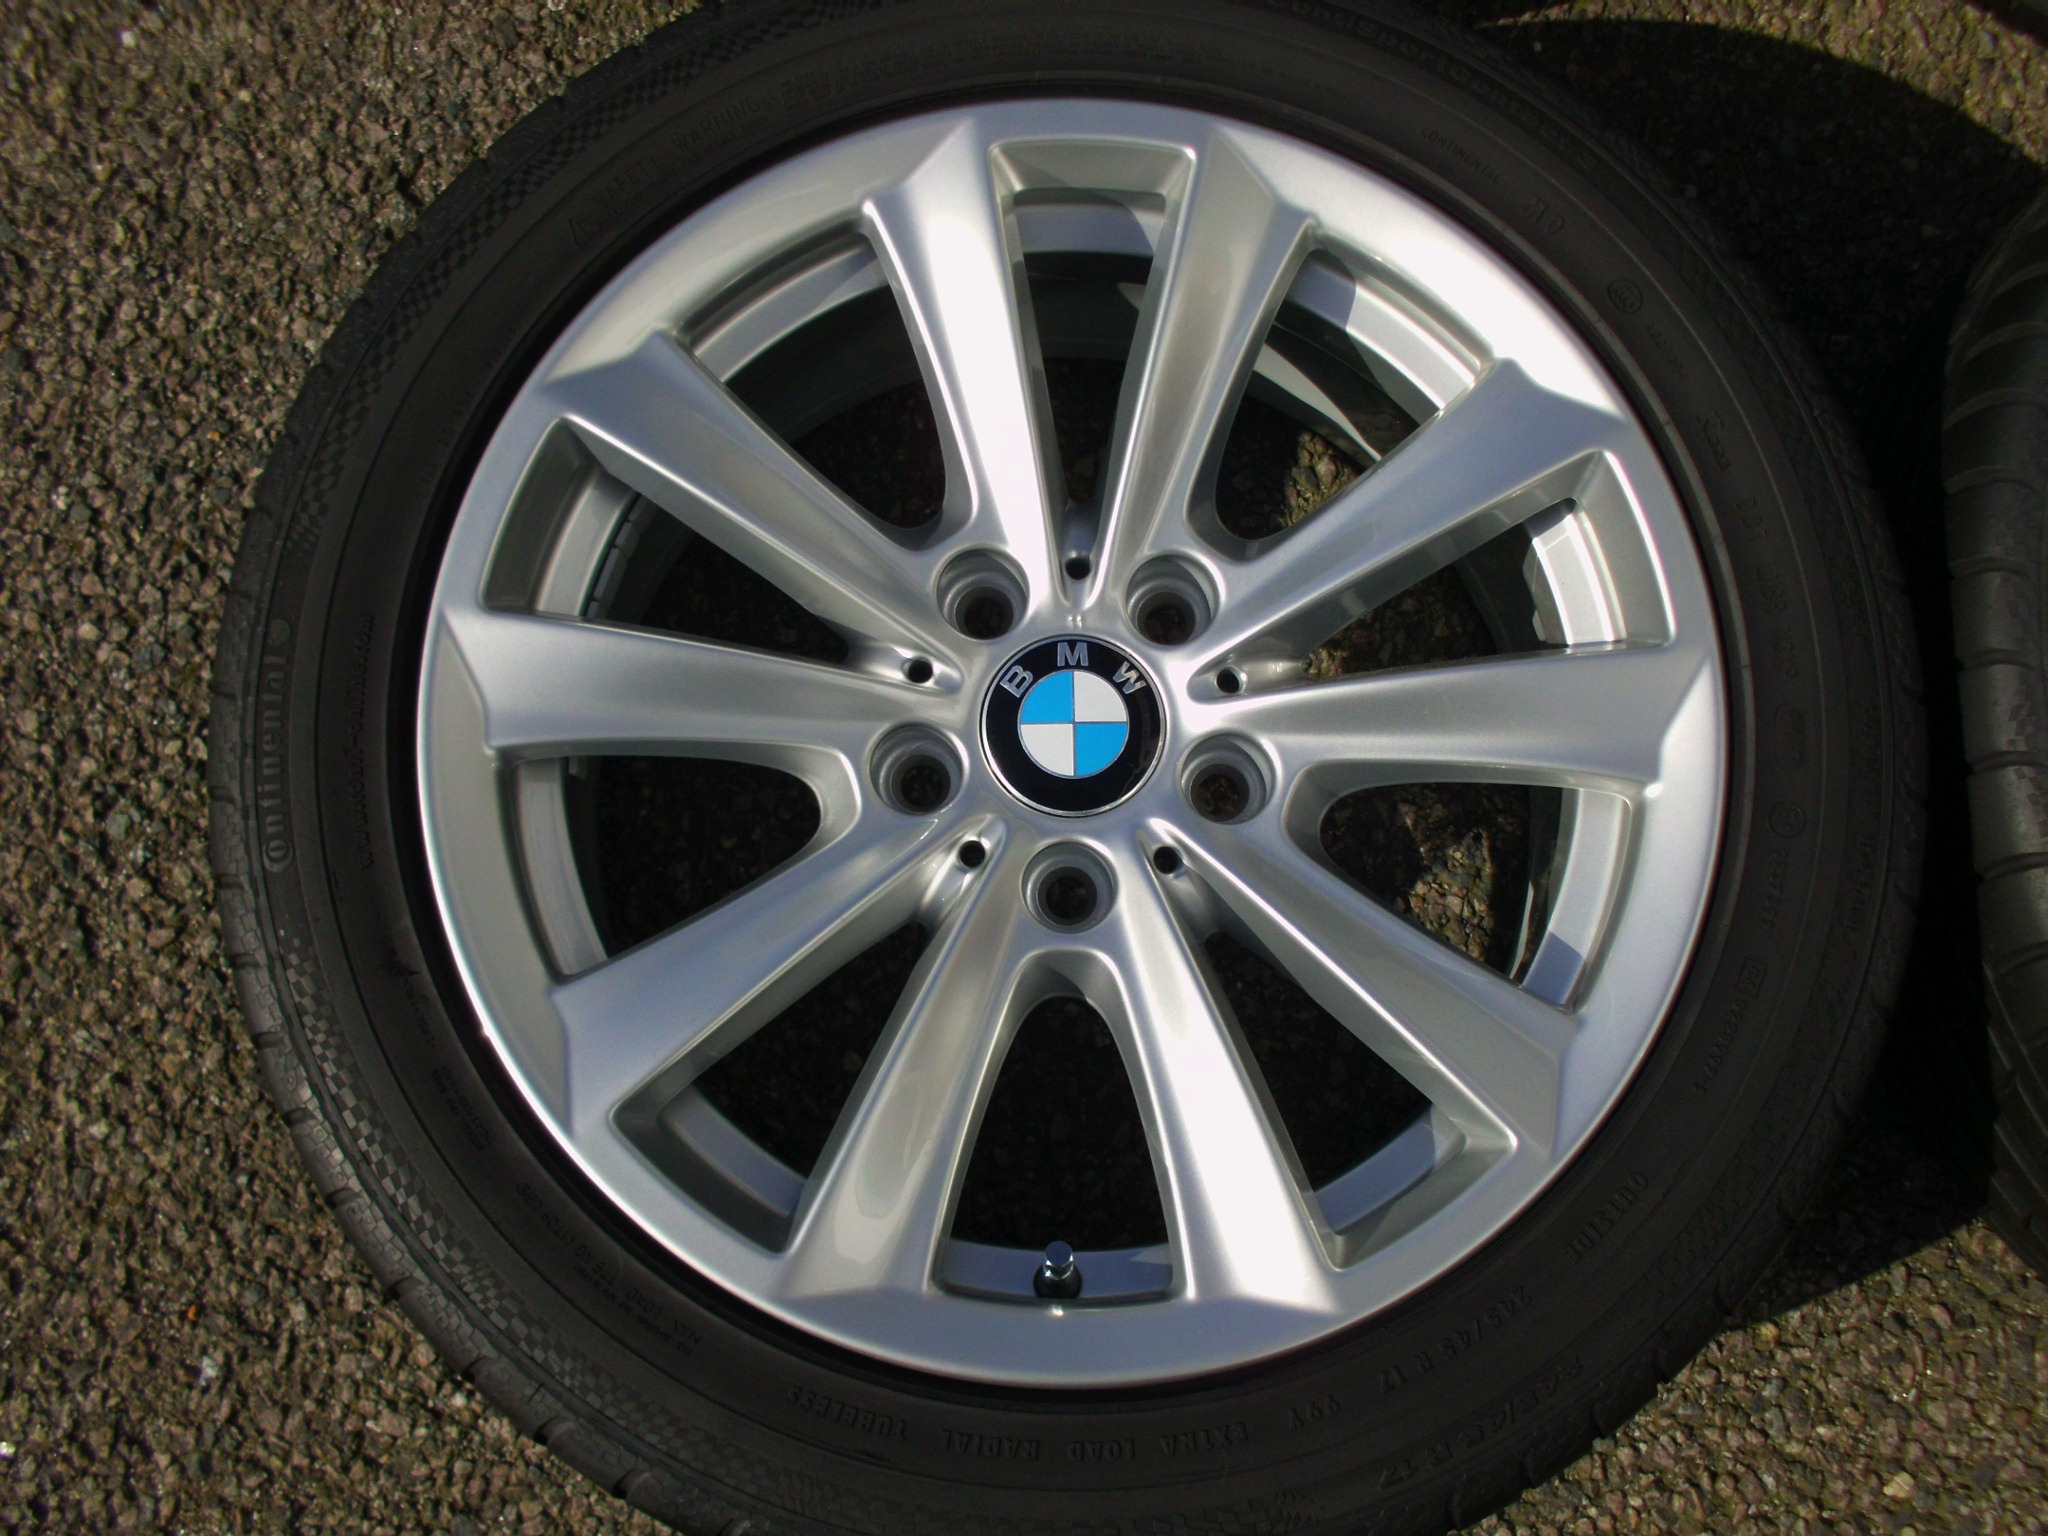 "USED 17"" GENUINE BMW STYLE 236 V SPOKE ALLOY WHEELS, FULLY REFURBED INC VG CONTINENTAL NON RUNFLAT TYRES"